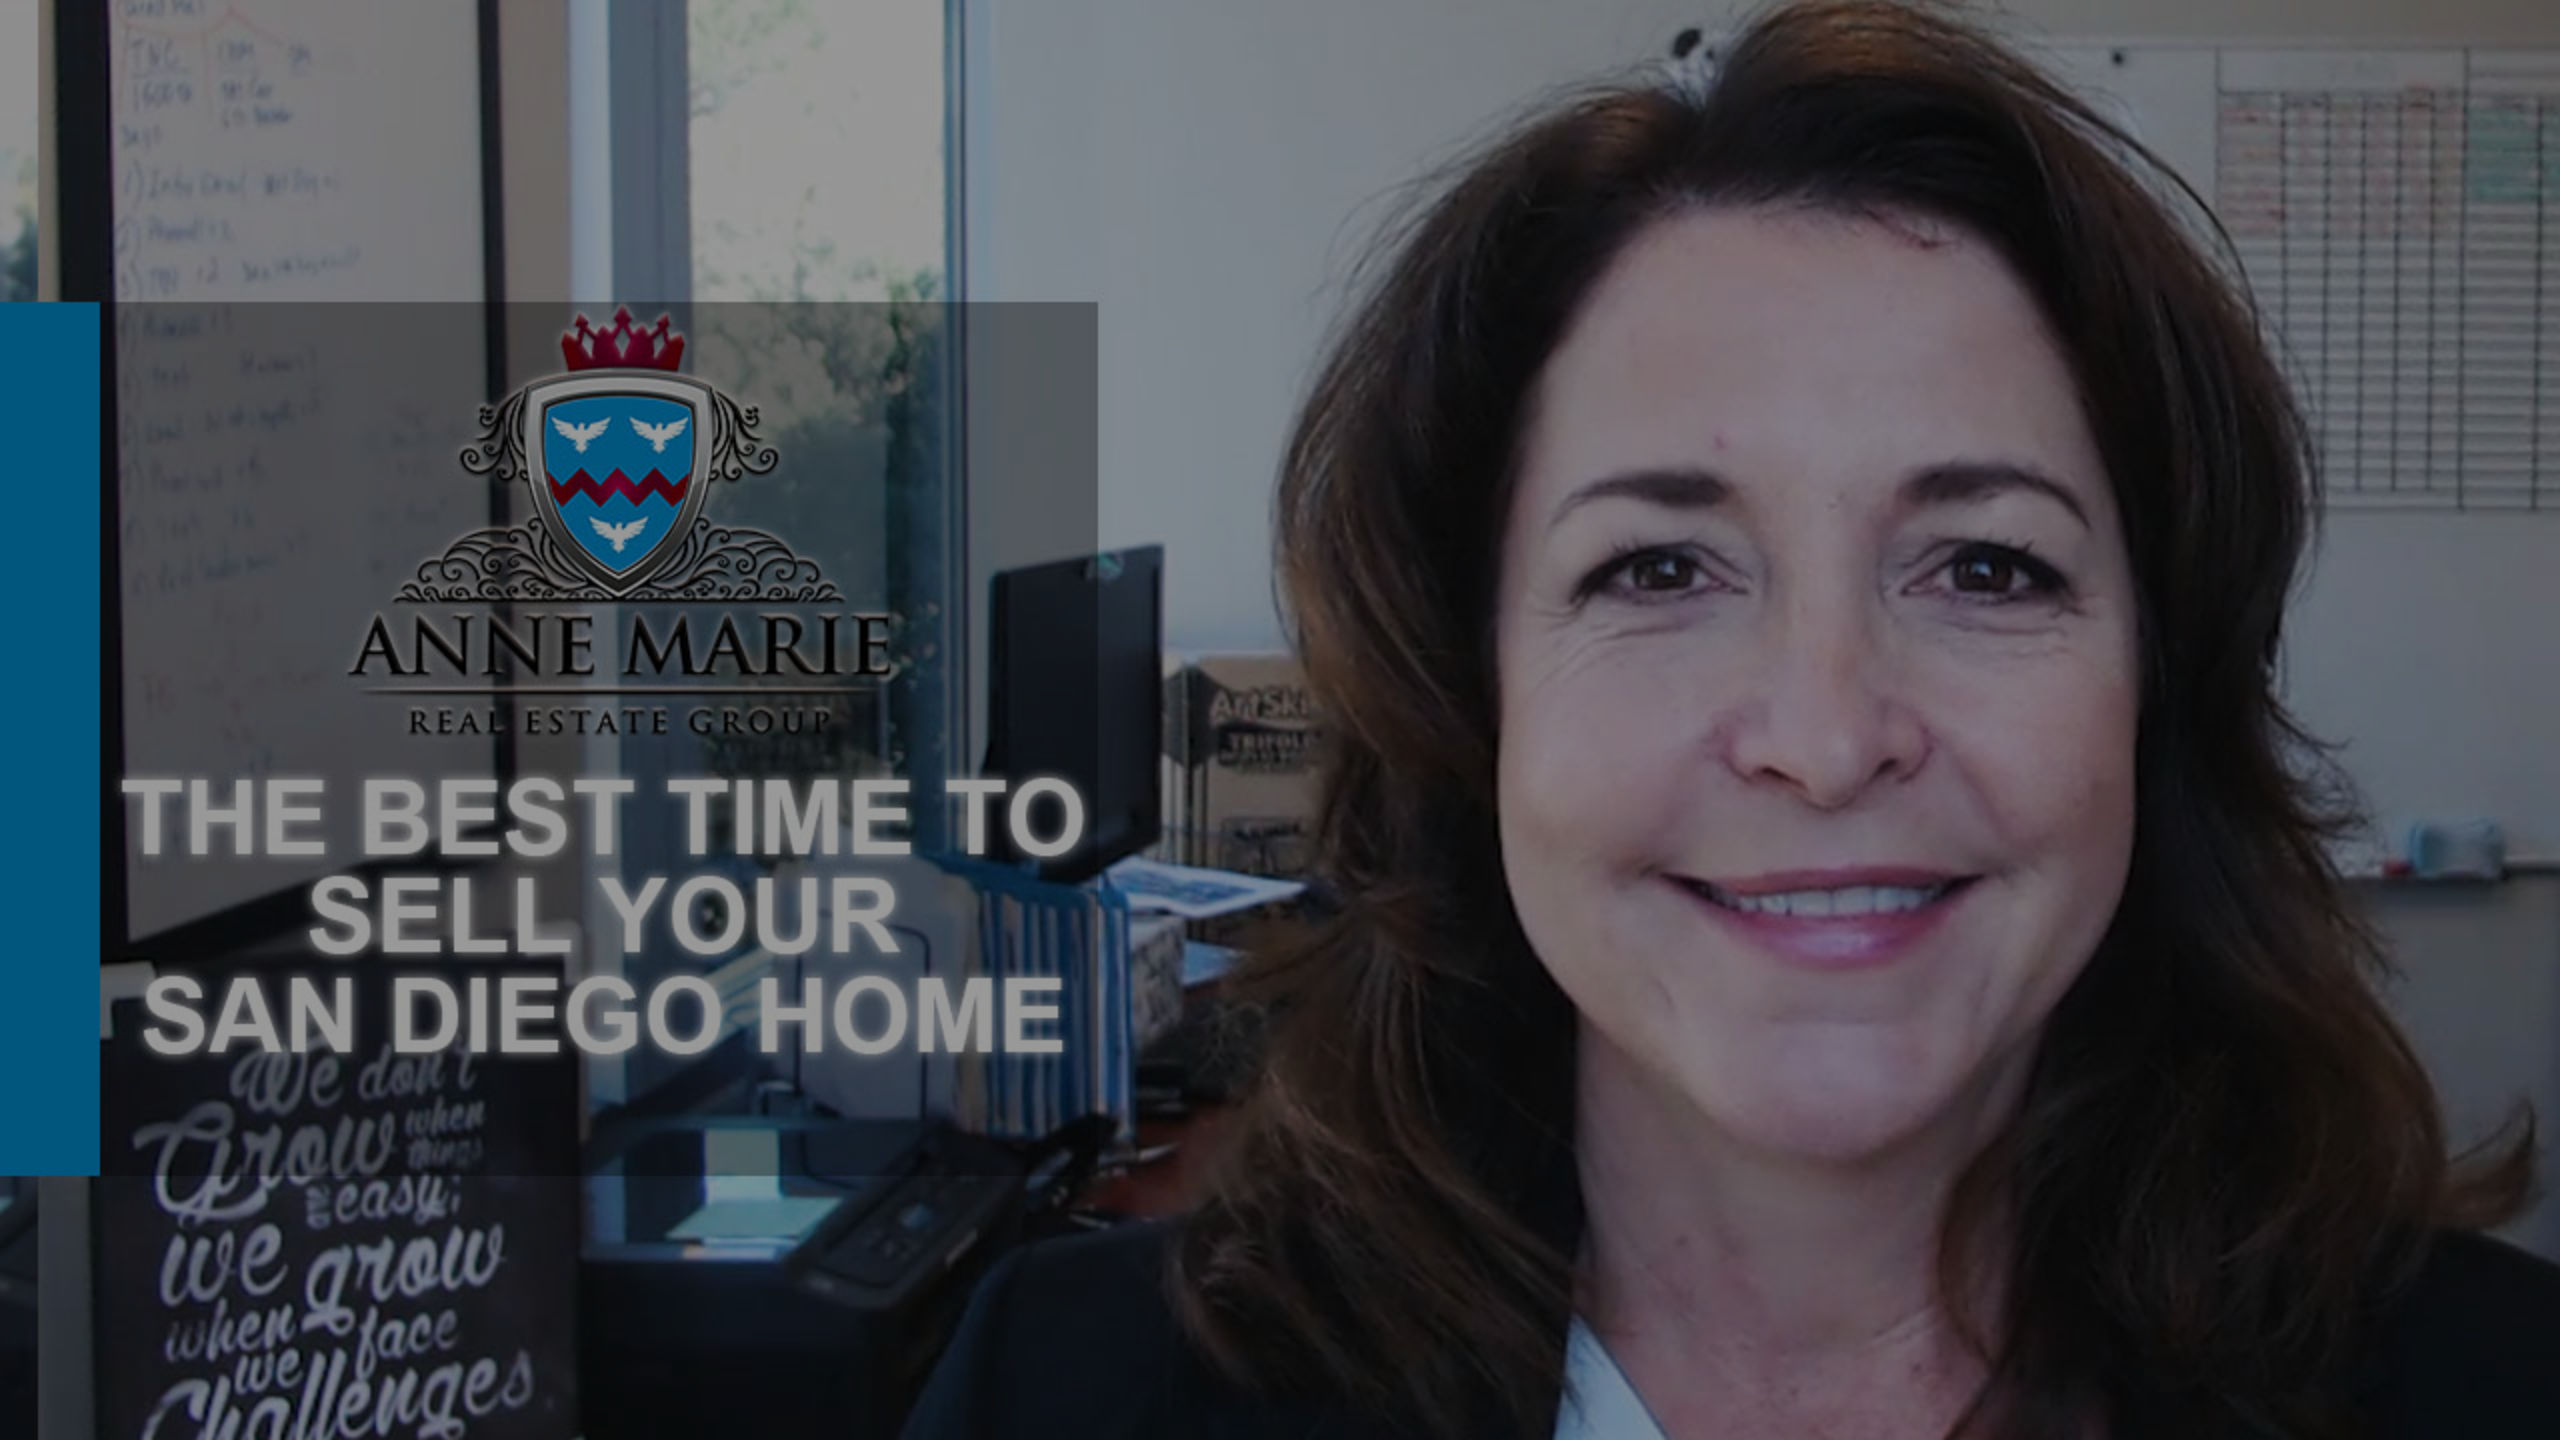 The Best Time to Sell Your San Diego Home